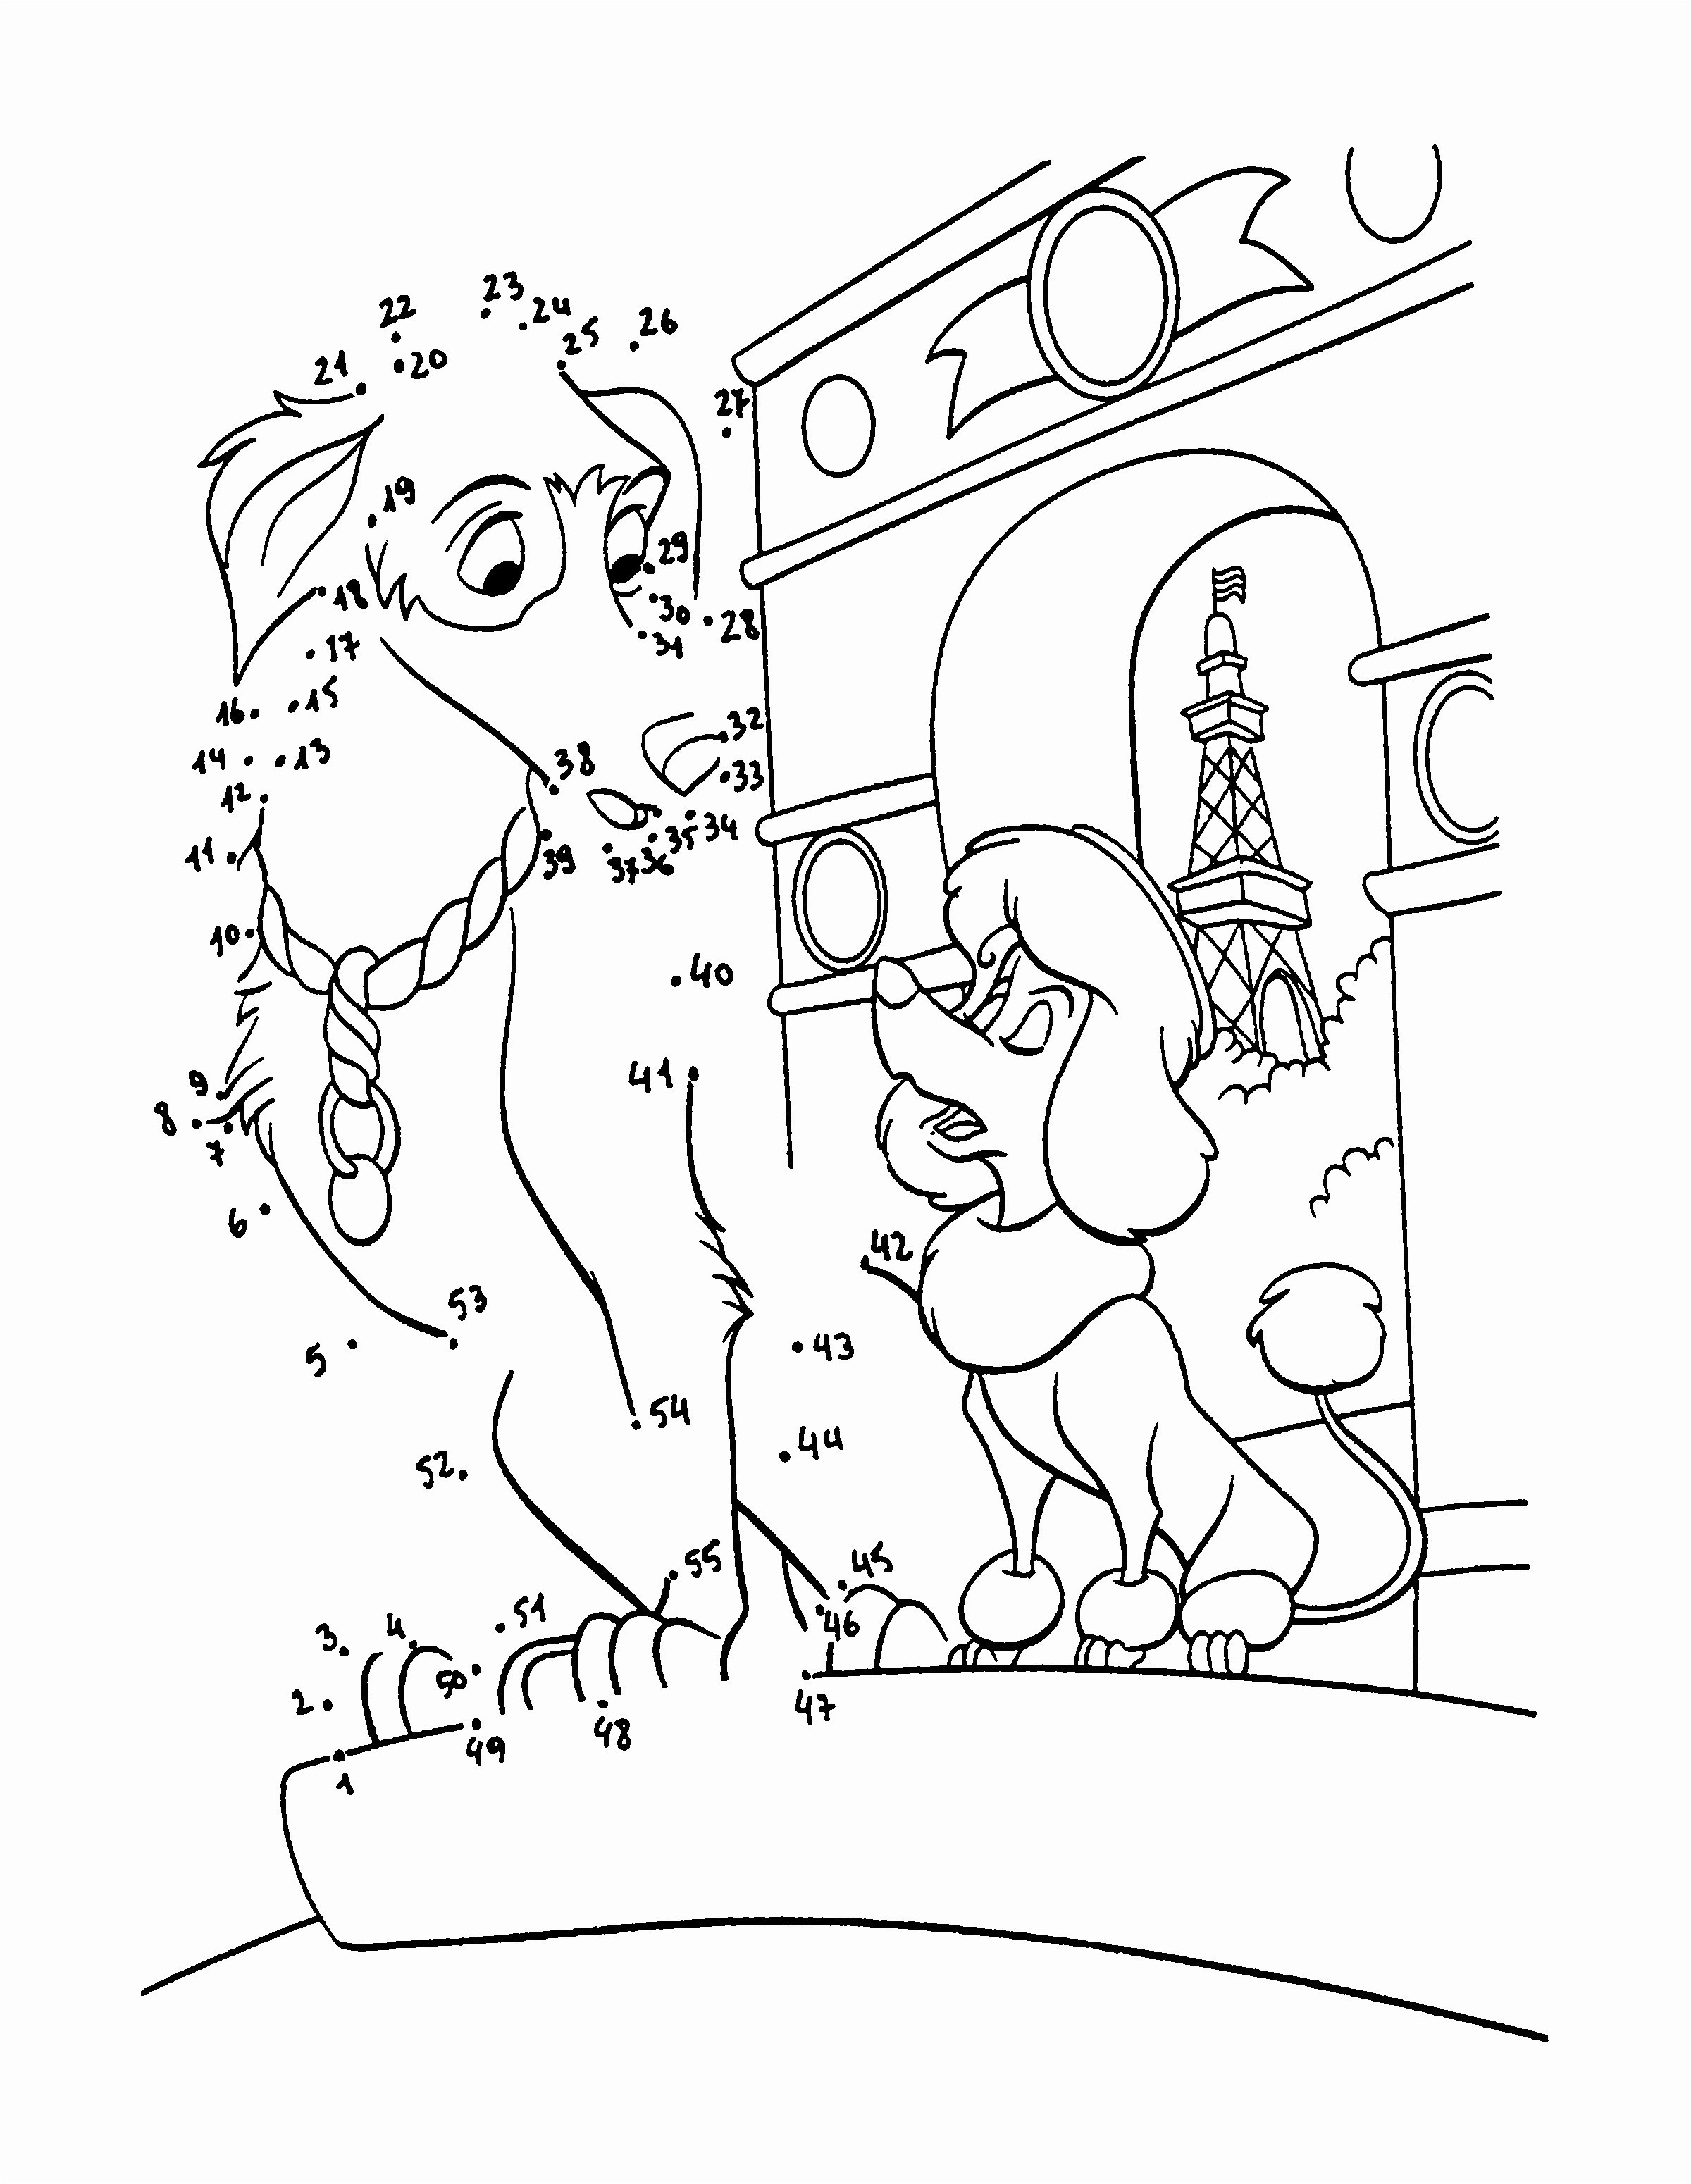 Electricity Coloring Pages  to Print 8a - Free For kids